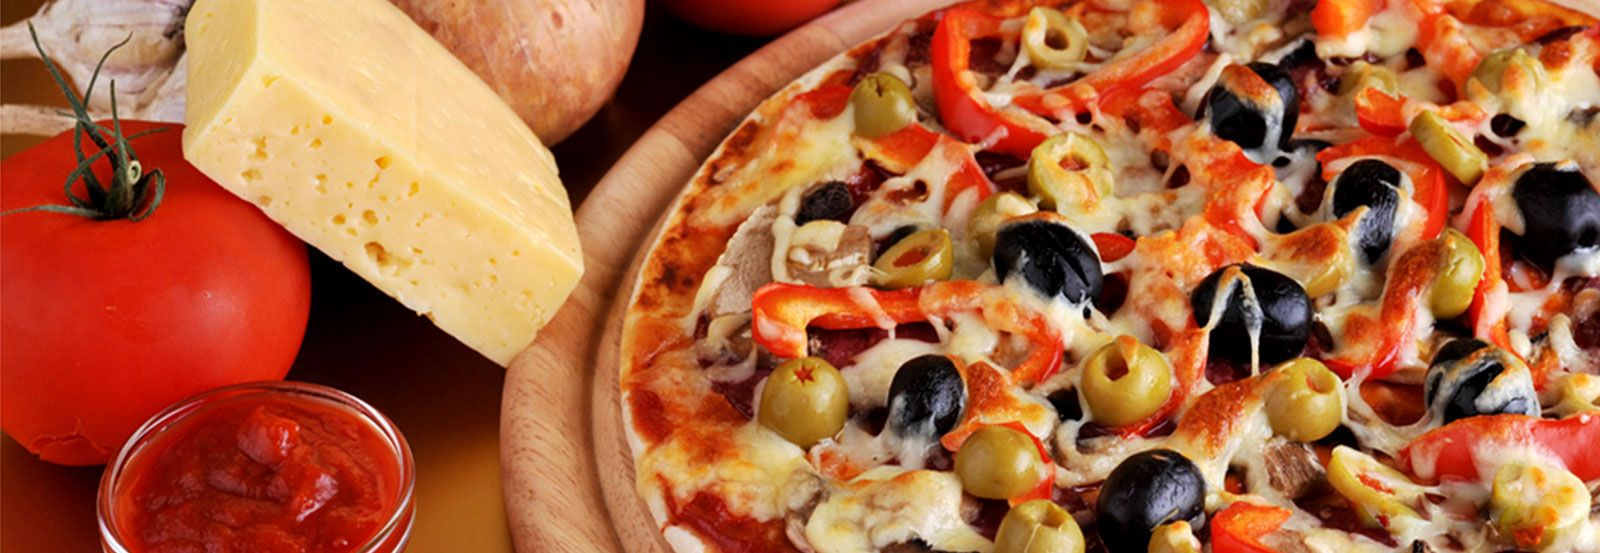 Pizza Delivery In Manalapan Nj Gourmet Pizza Food Italian Food Delivery